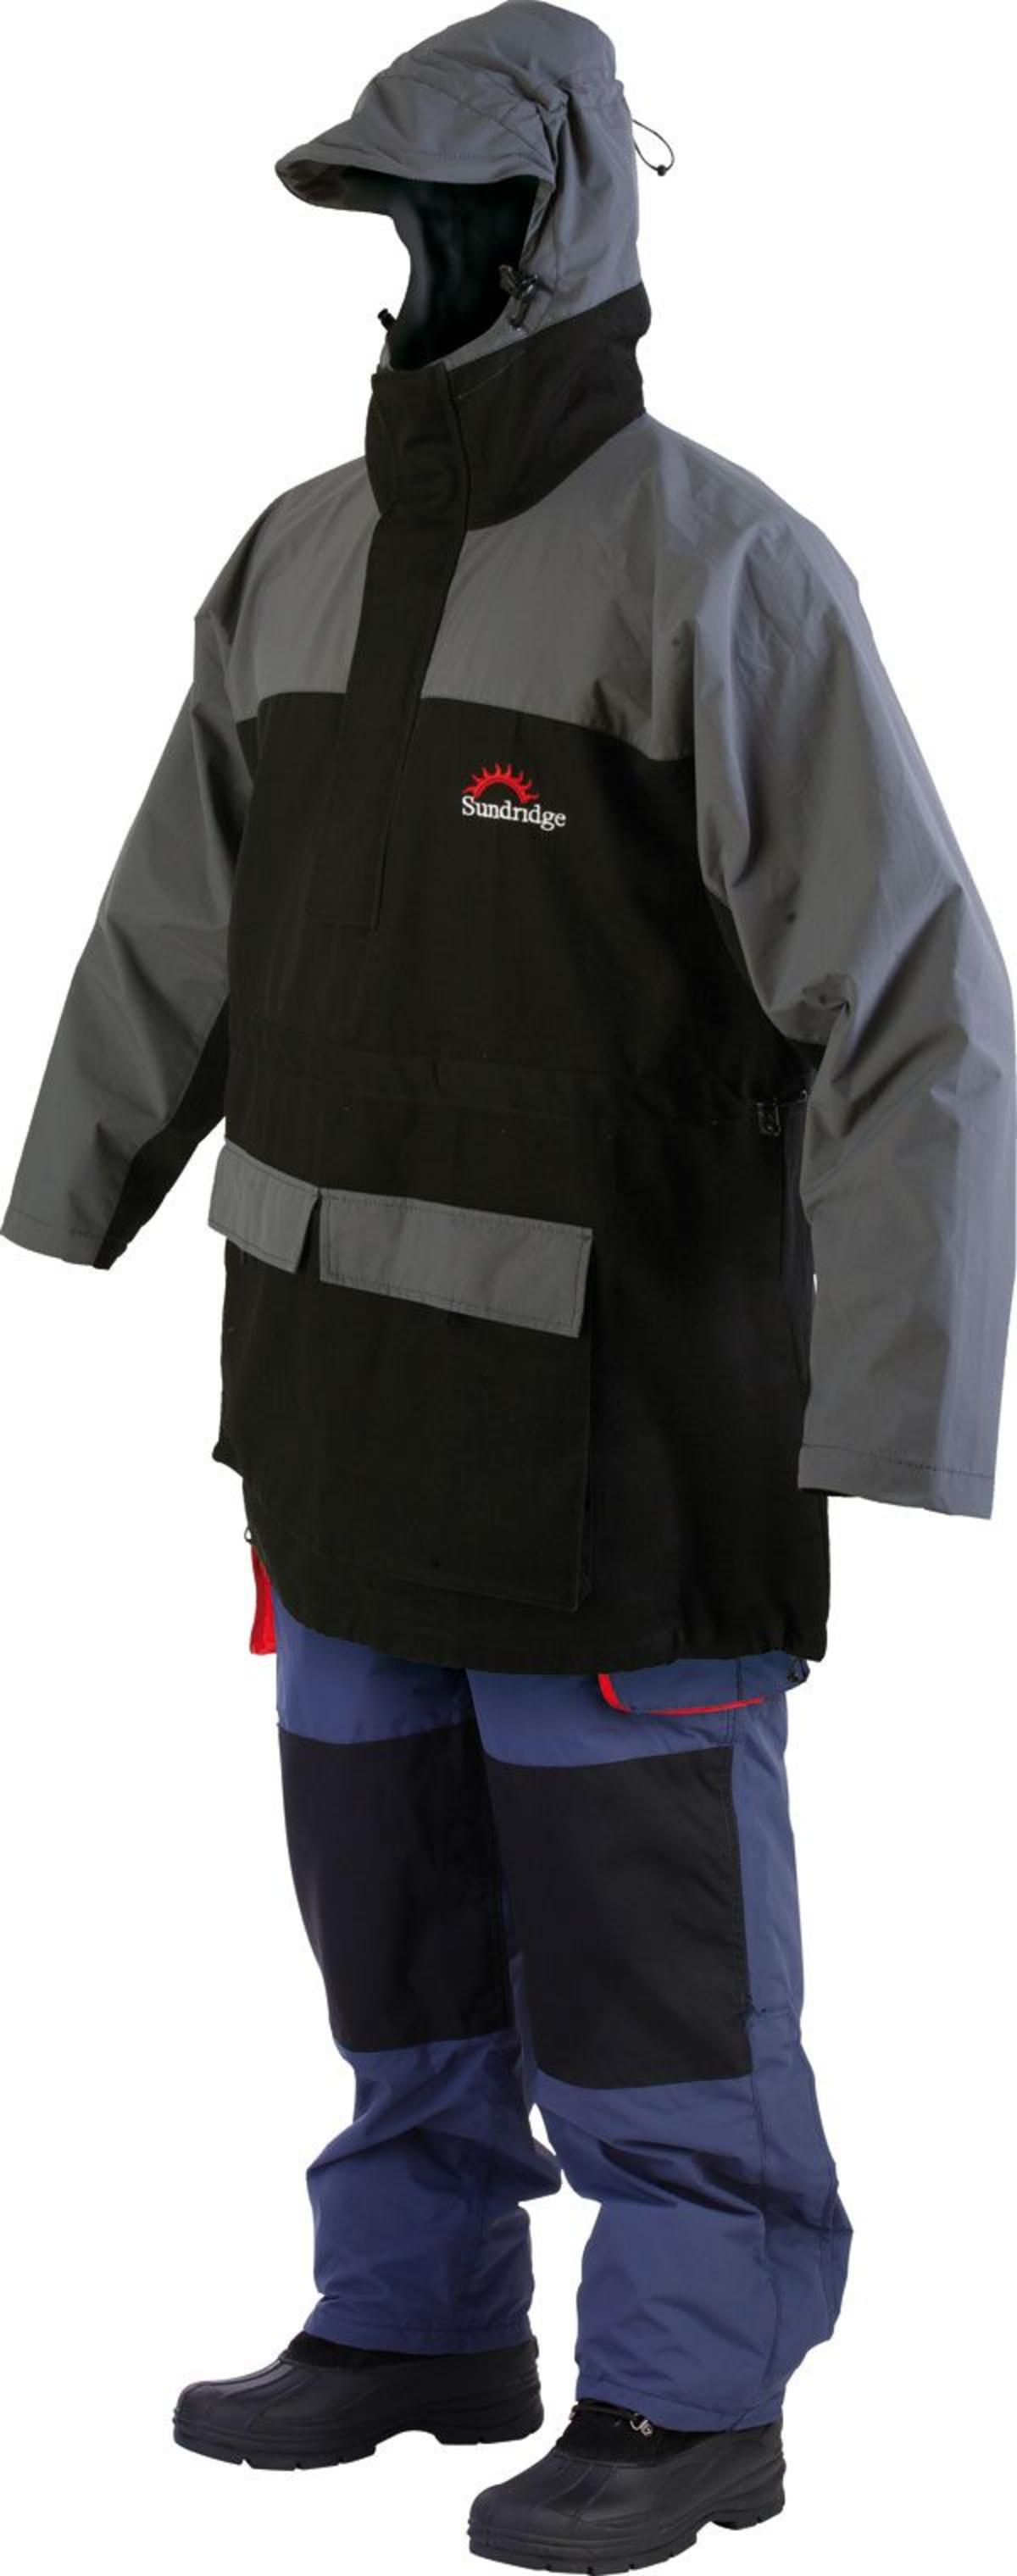 CLEARANCE SUNDRIDGE MARINE PRO SPORT COTTON SMOCK BLACK/GREY Model No MPCS